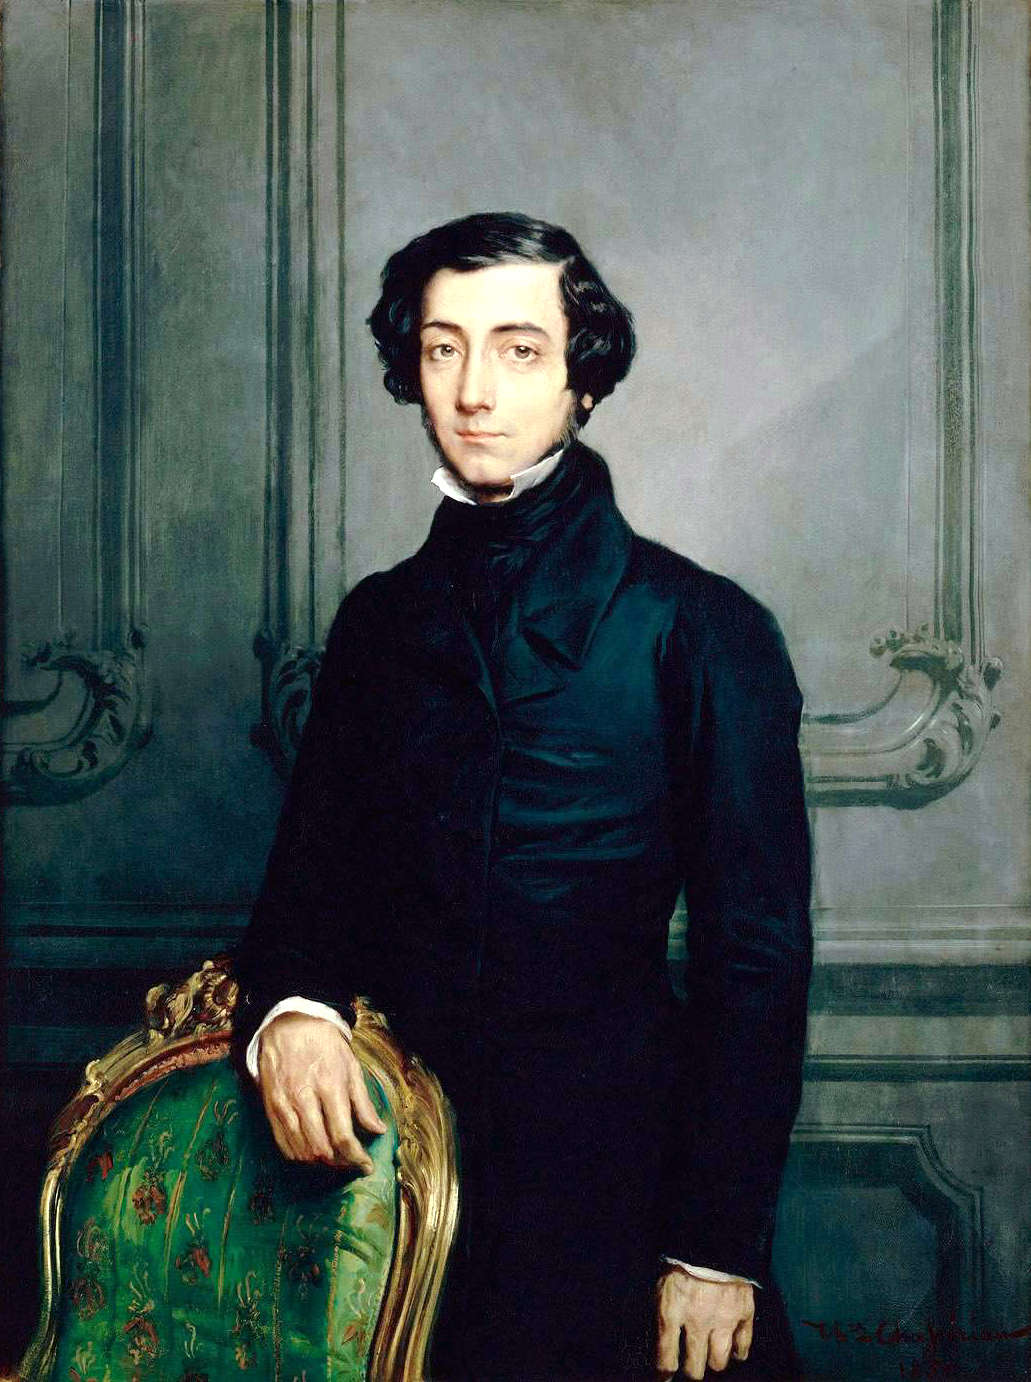 Tocqueville Quotes: Politics, freedom and society